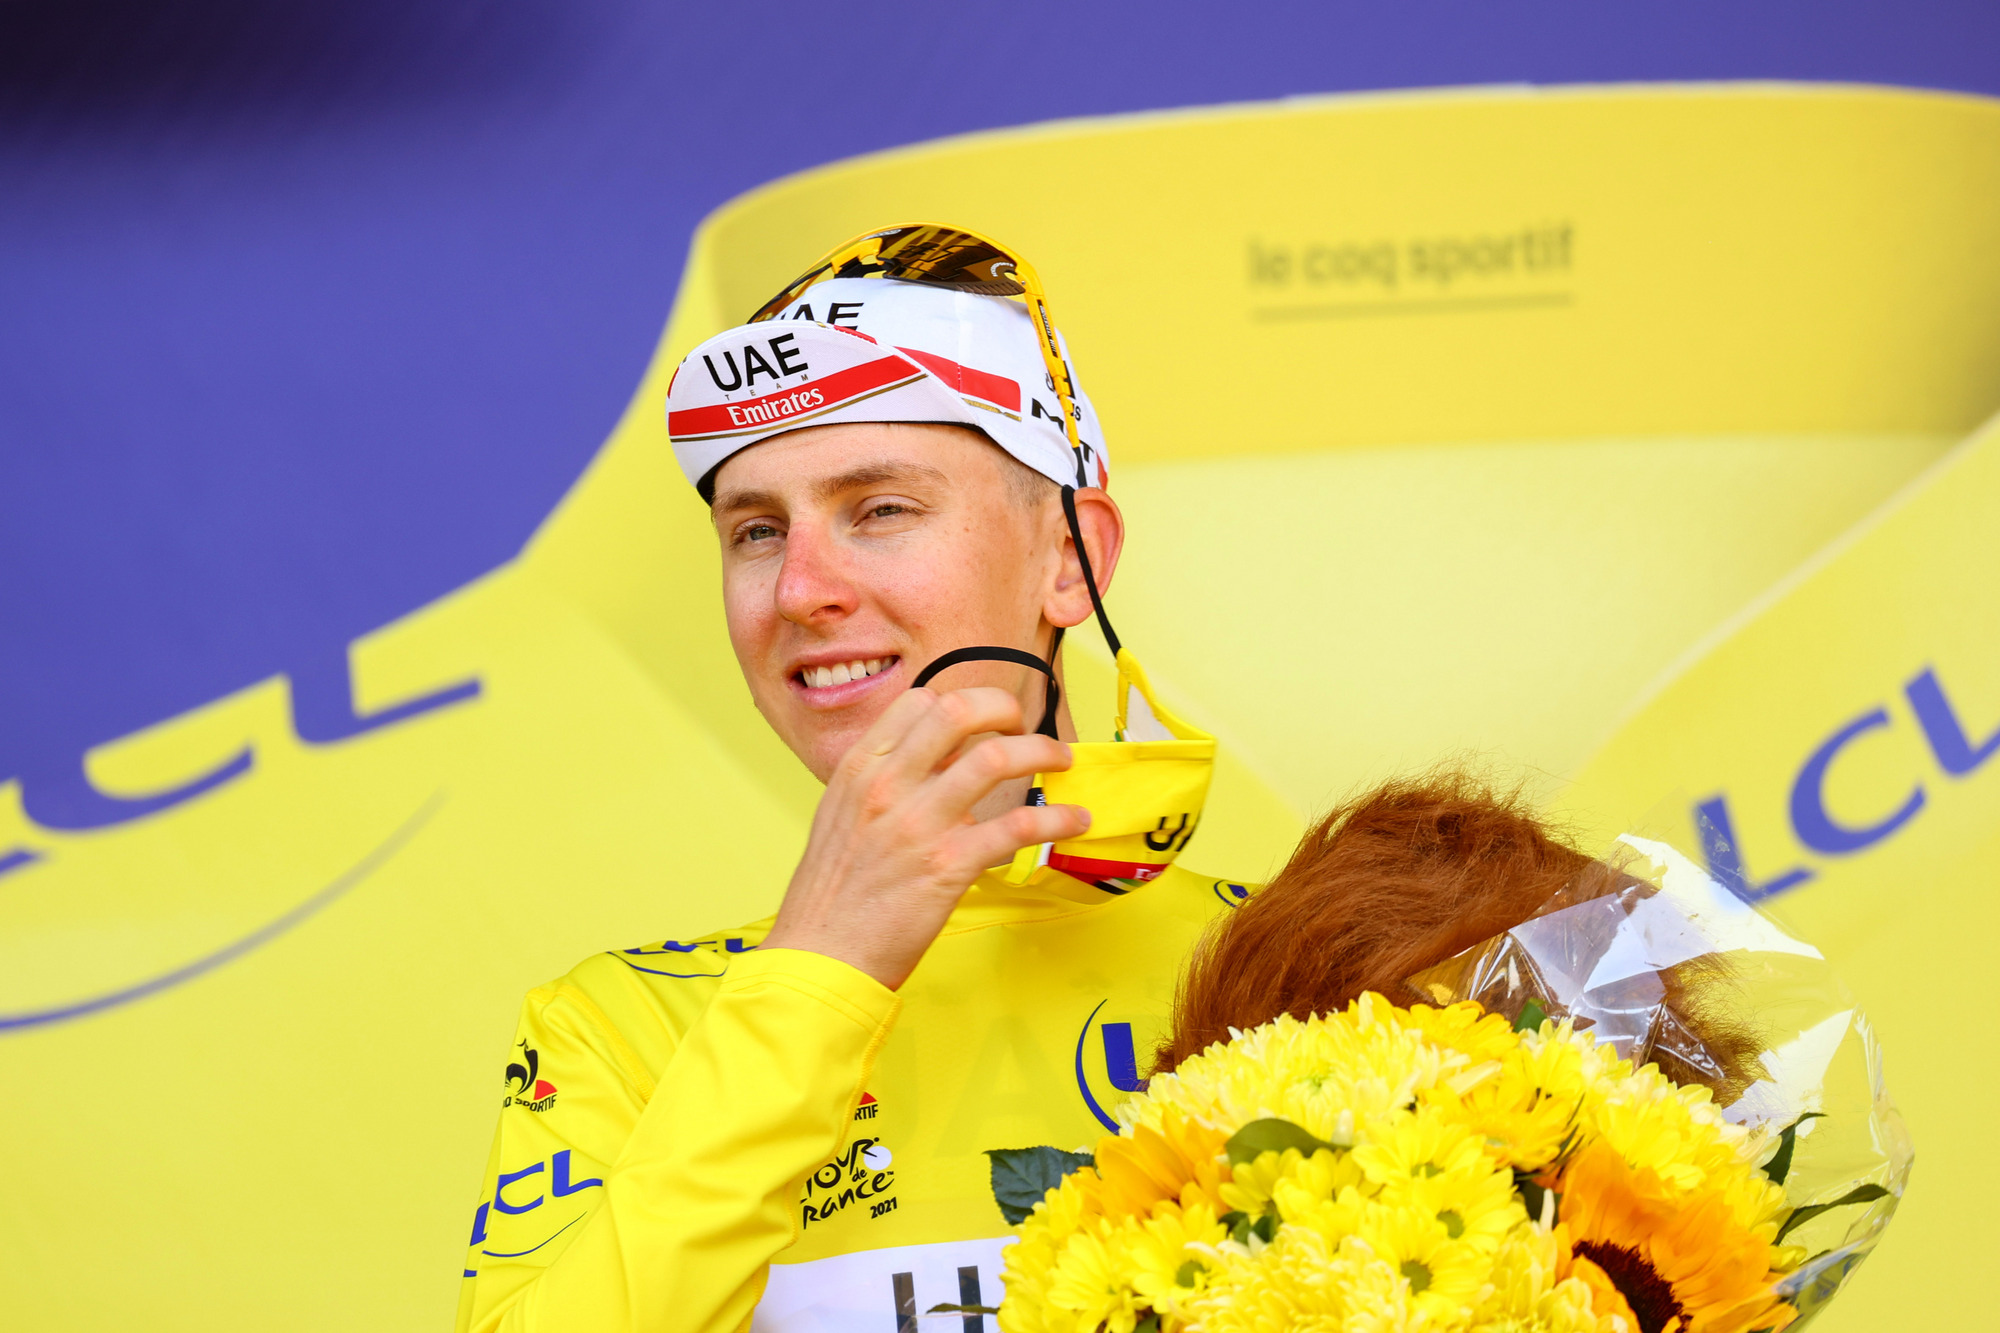 Tadej Pogacar continues to lead the 2021 Tour de France after stage 13